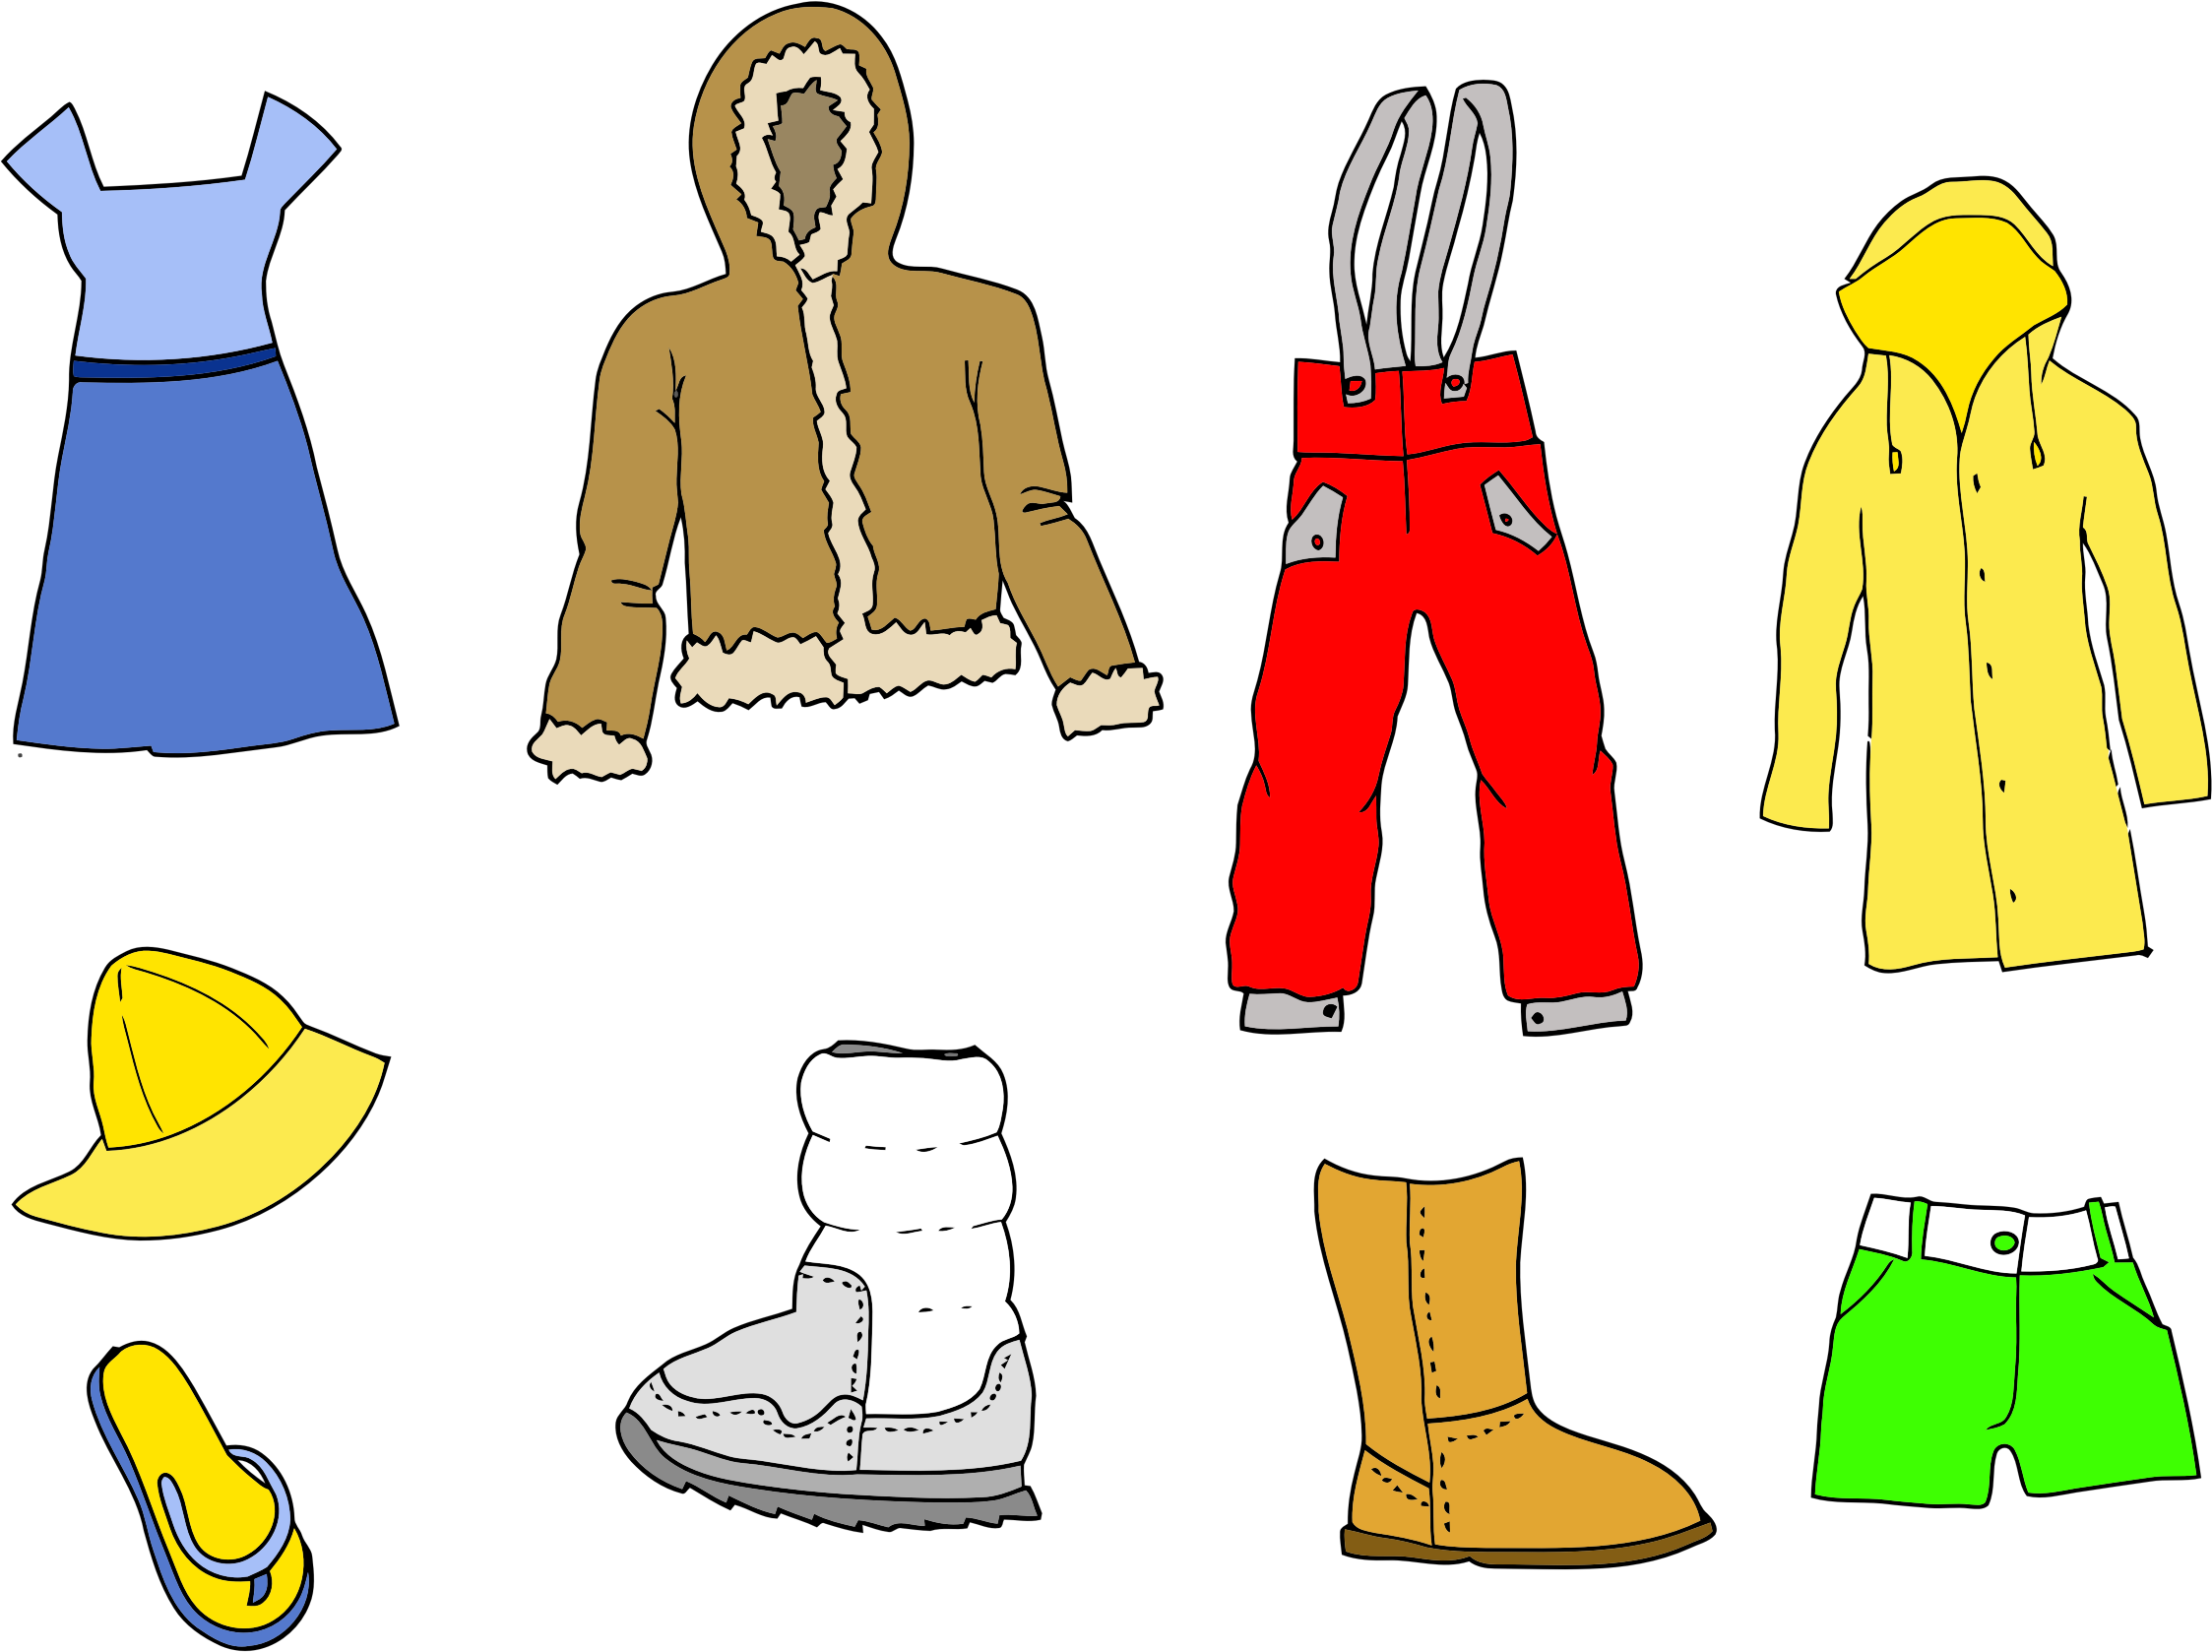 Donation clipart cloth. Clothing assortment icons png